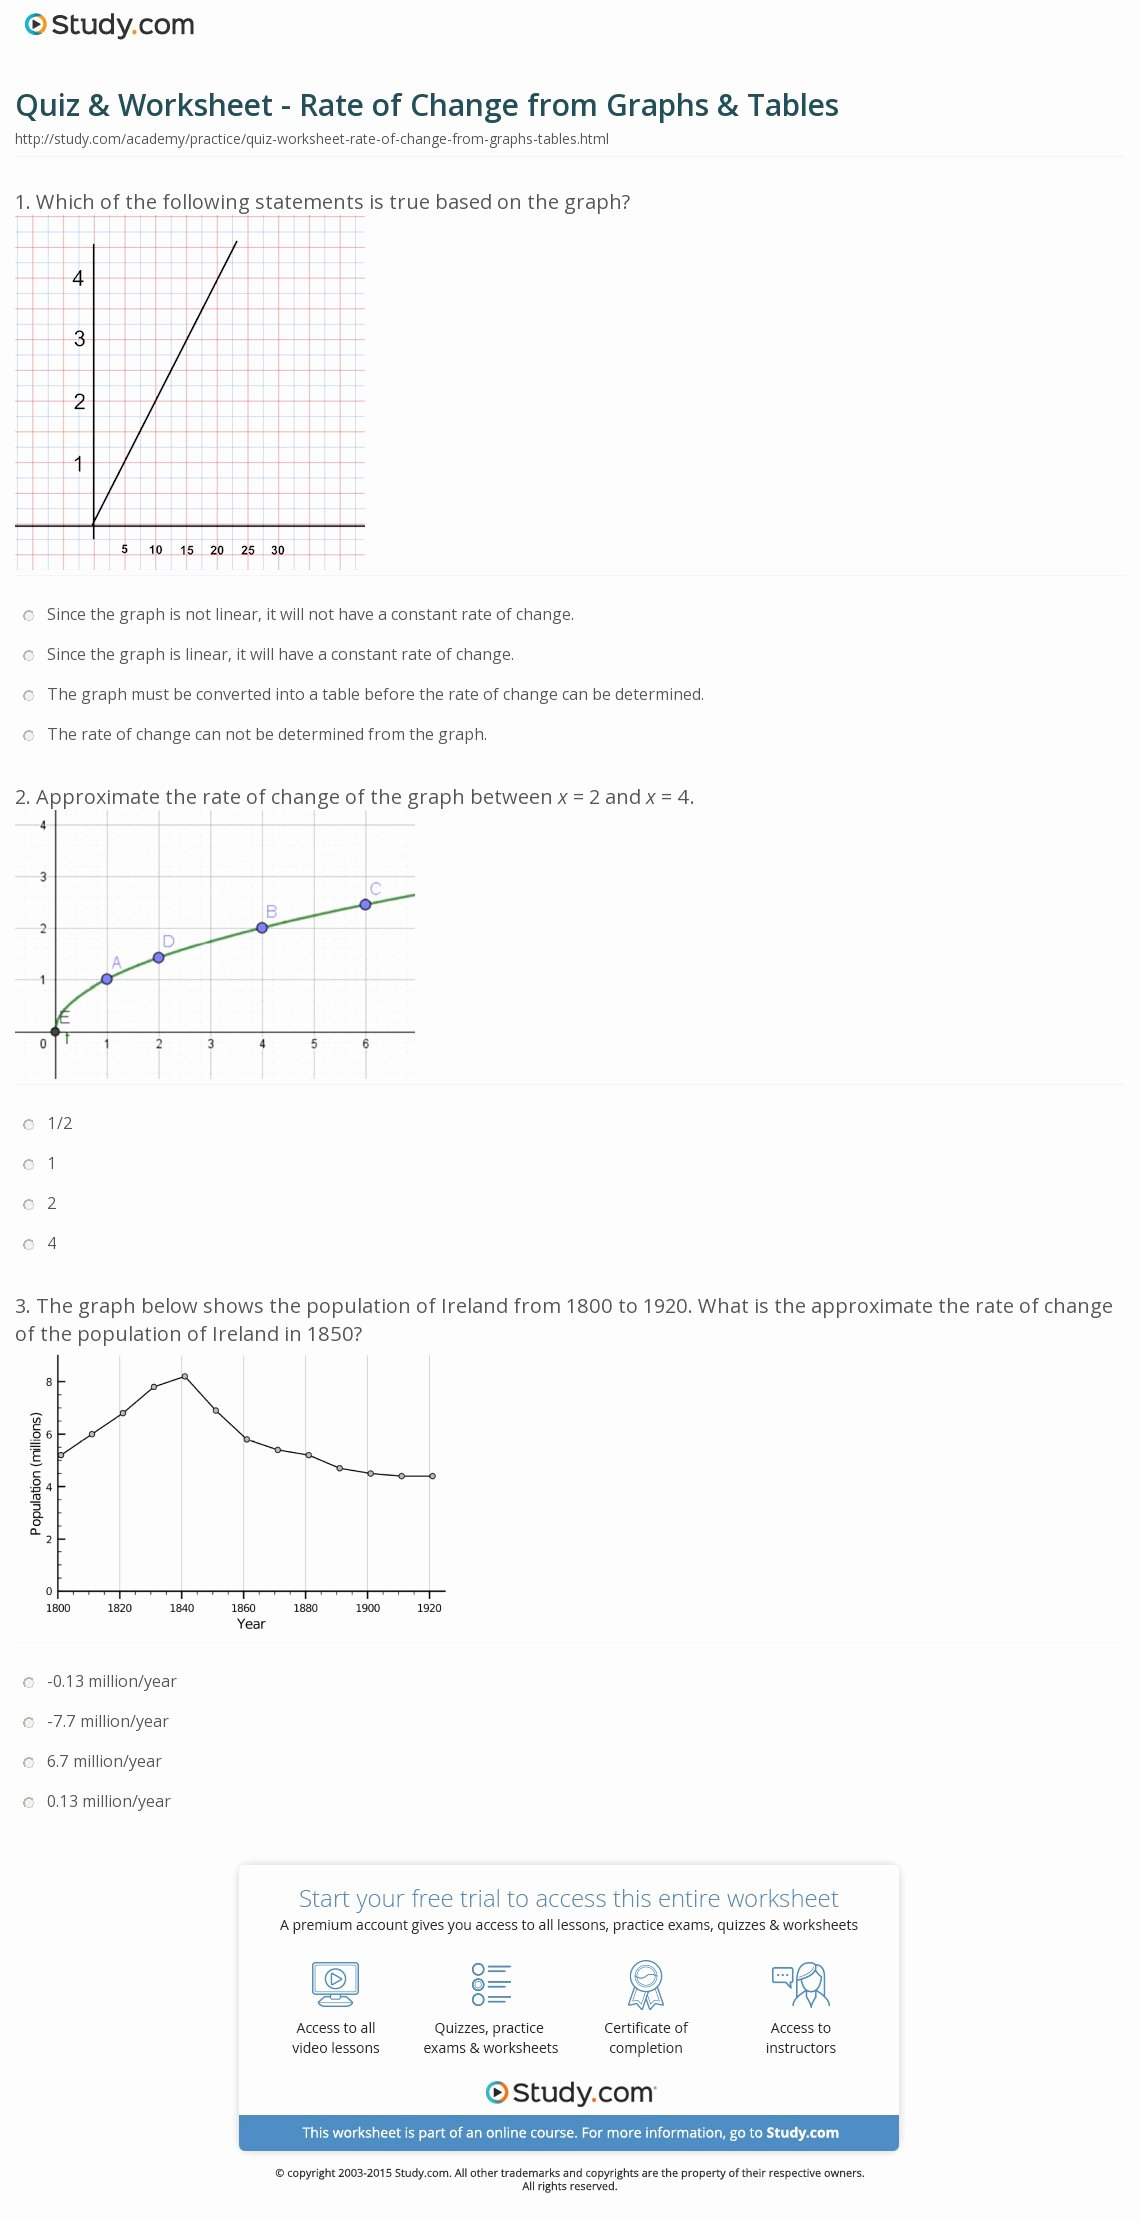 Rate Of Change Worksheet Best Of Quiz & Worksheet Rate Of Change From Graphs & Tables